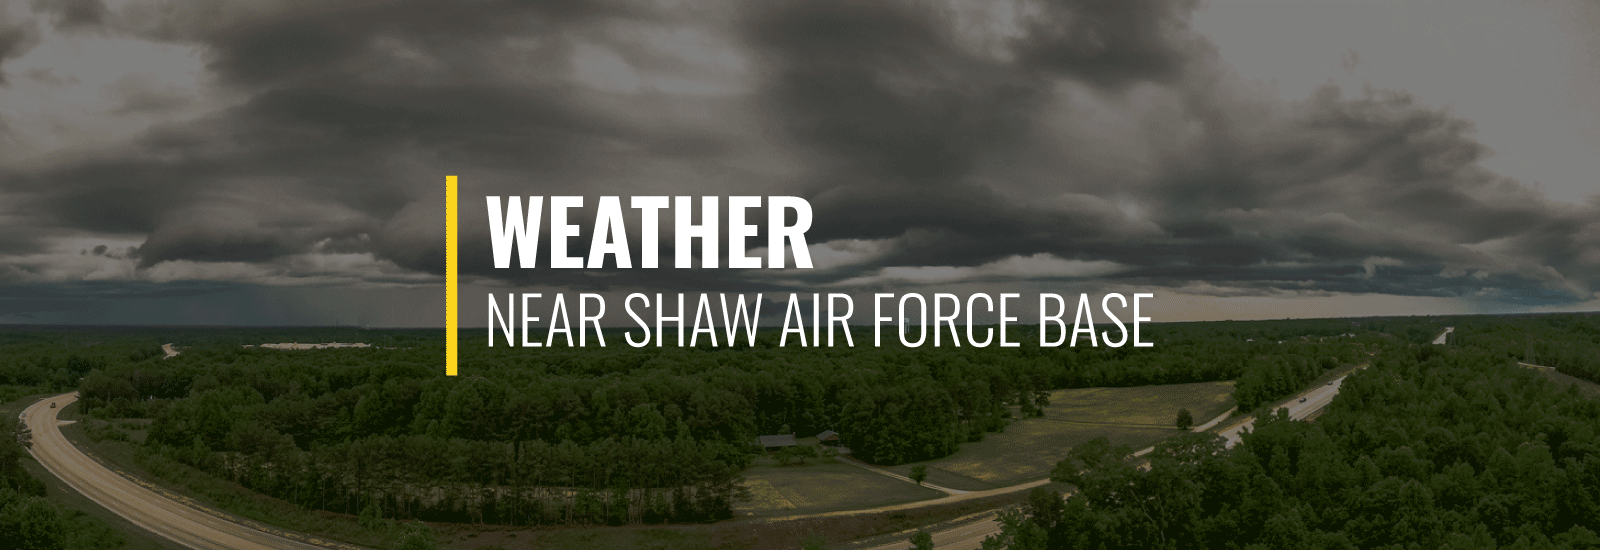 Shaw AFB Weather